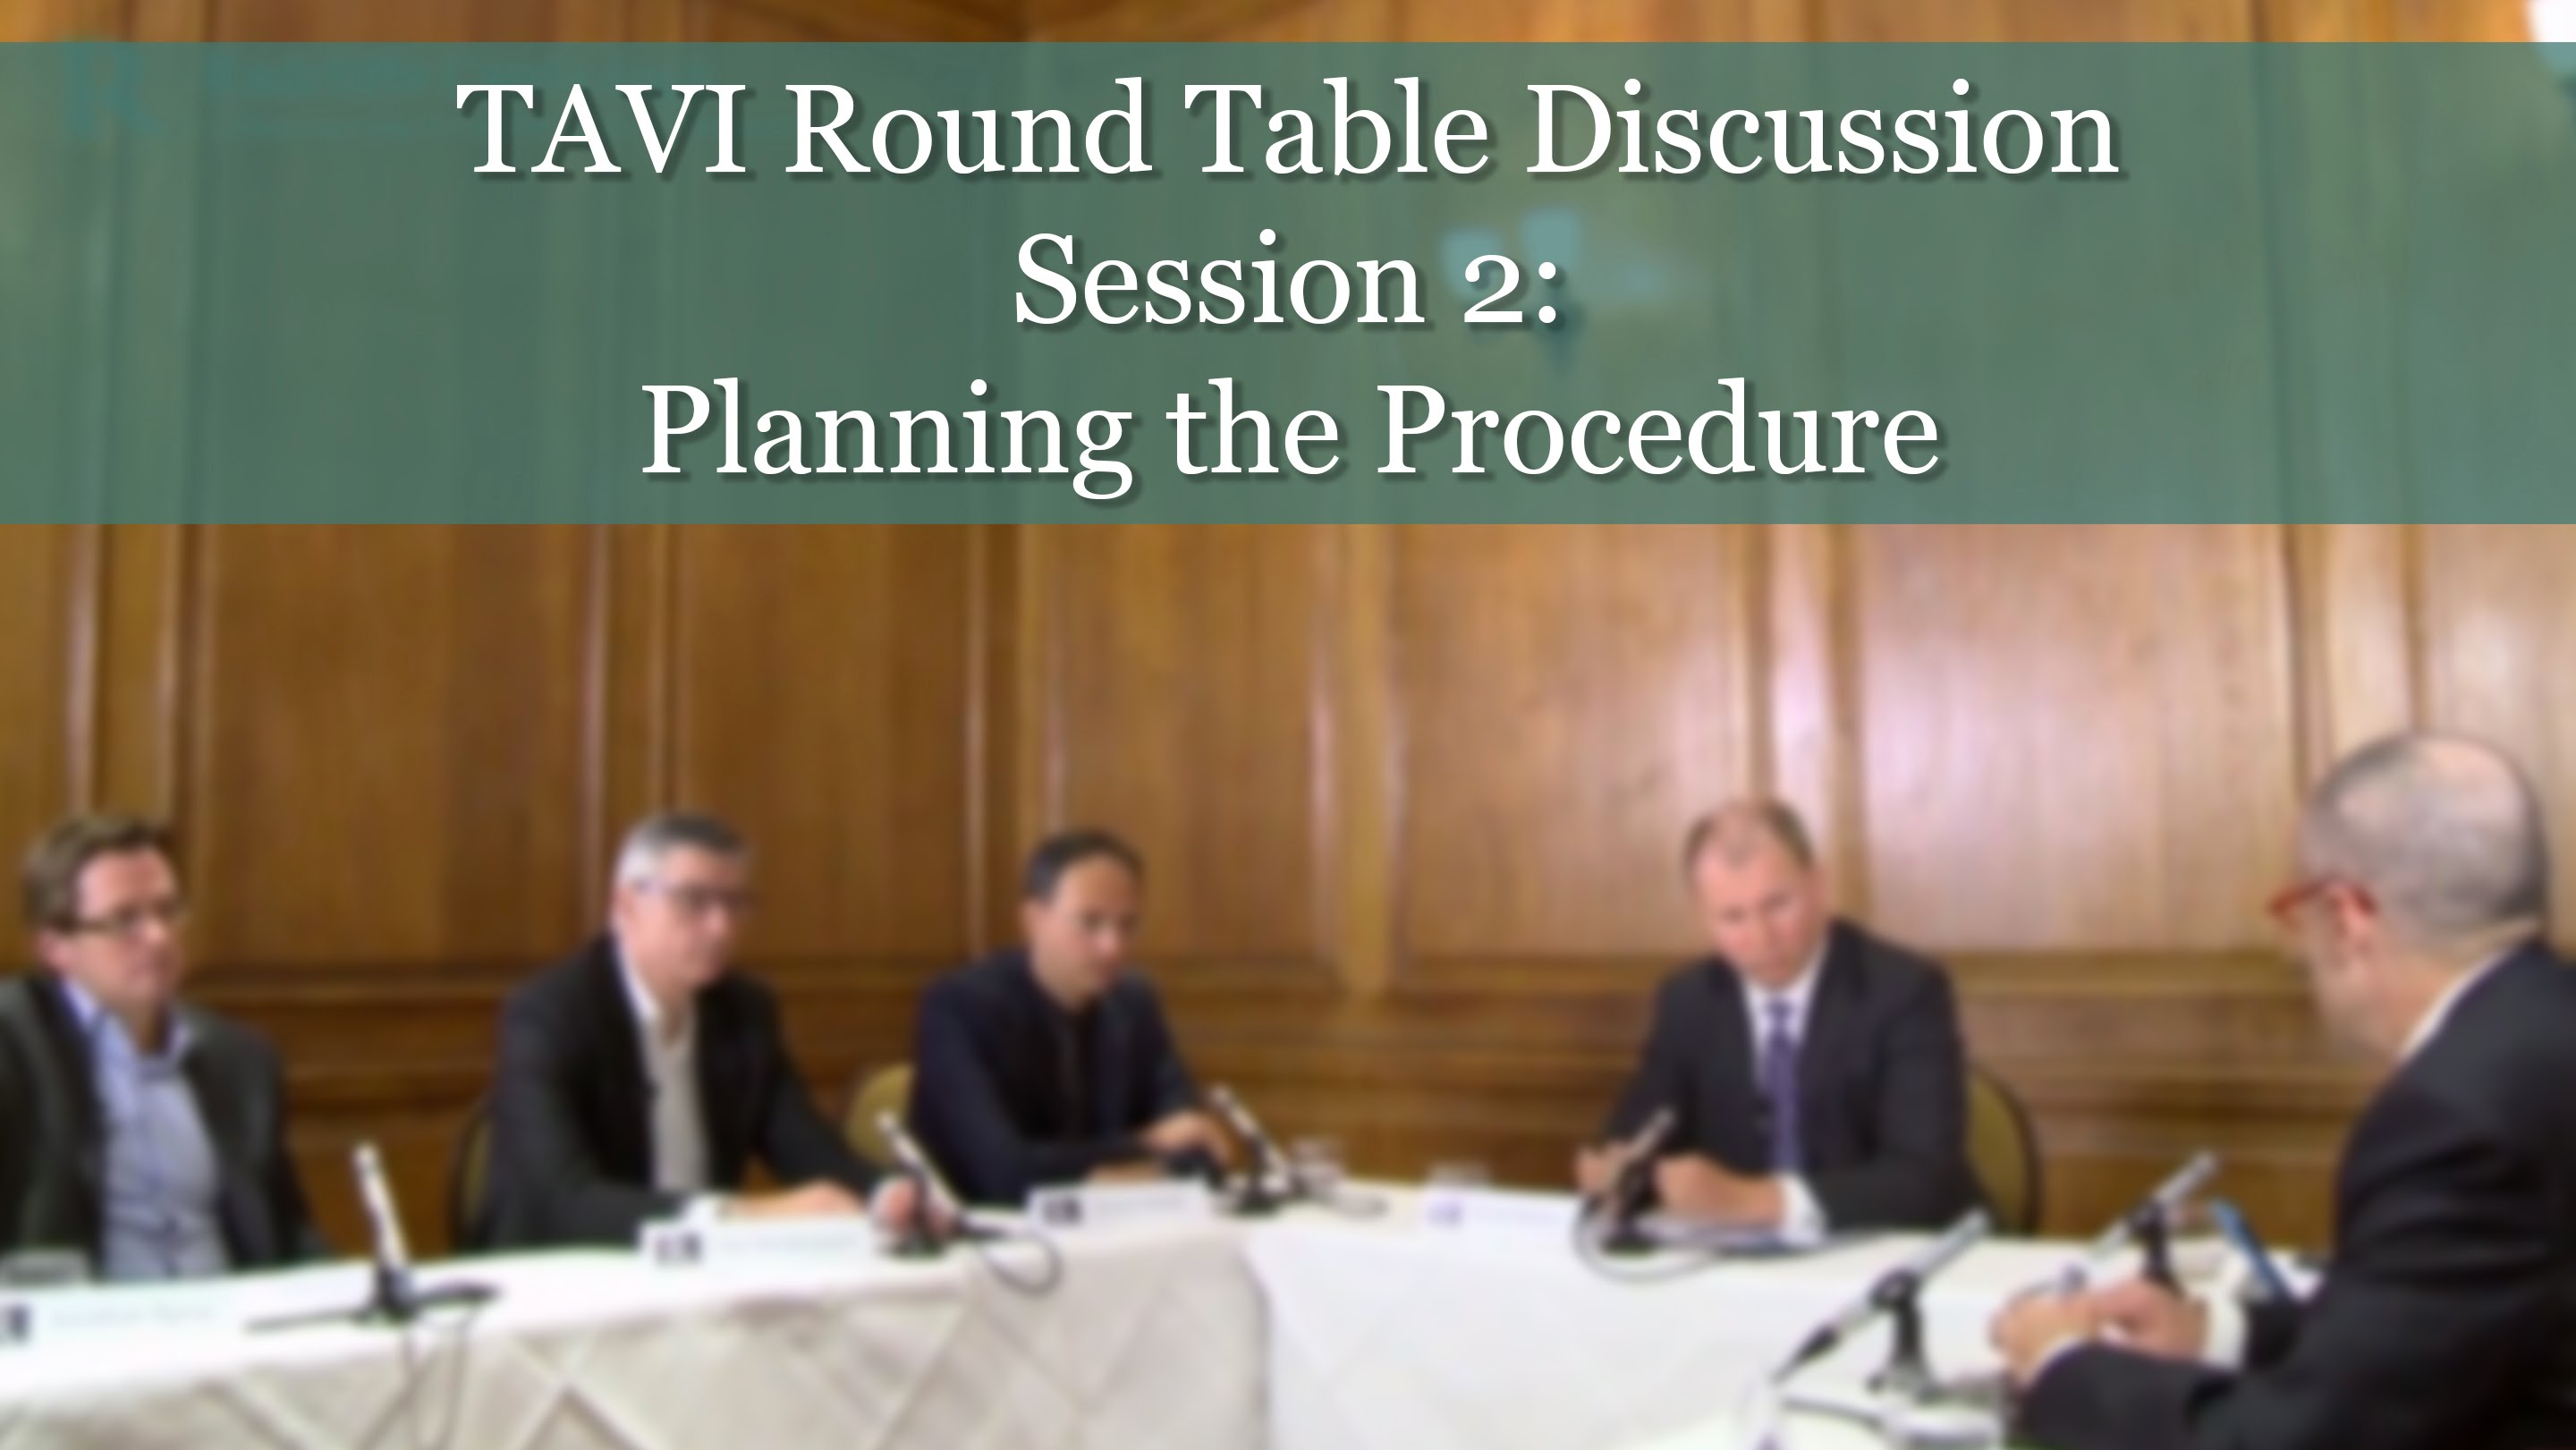 TAVI Round Table Discussion - Session 2